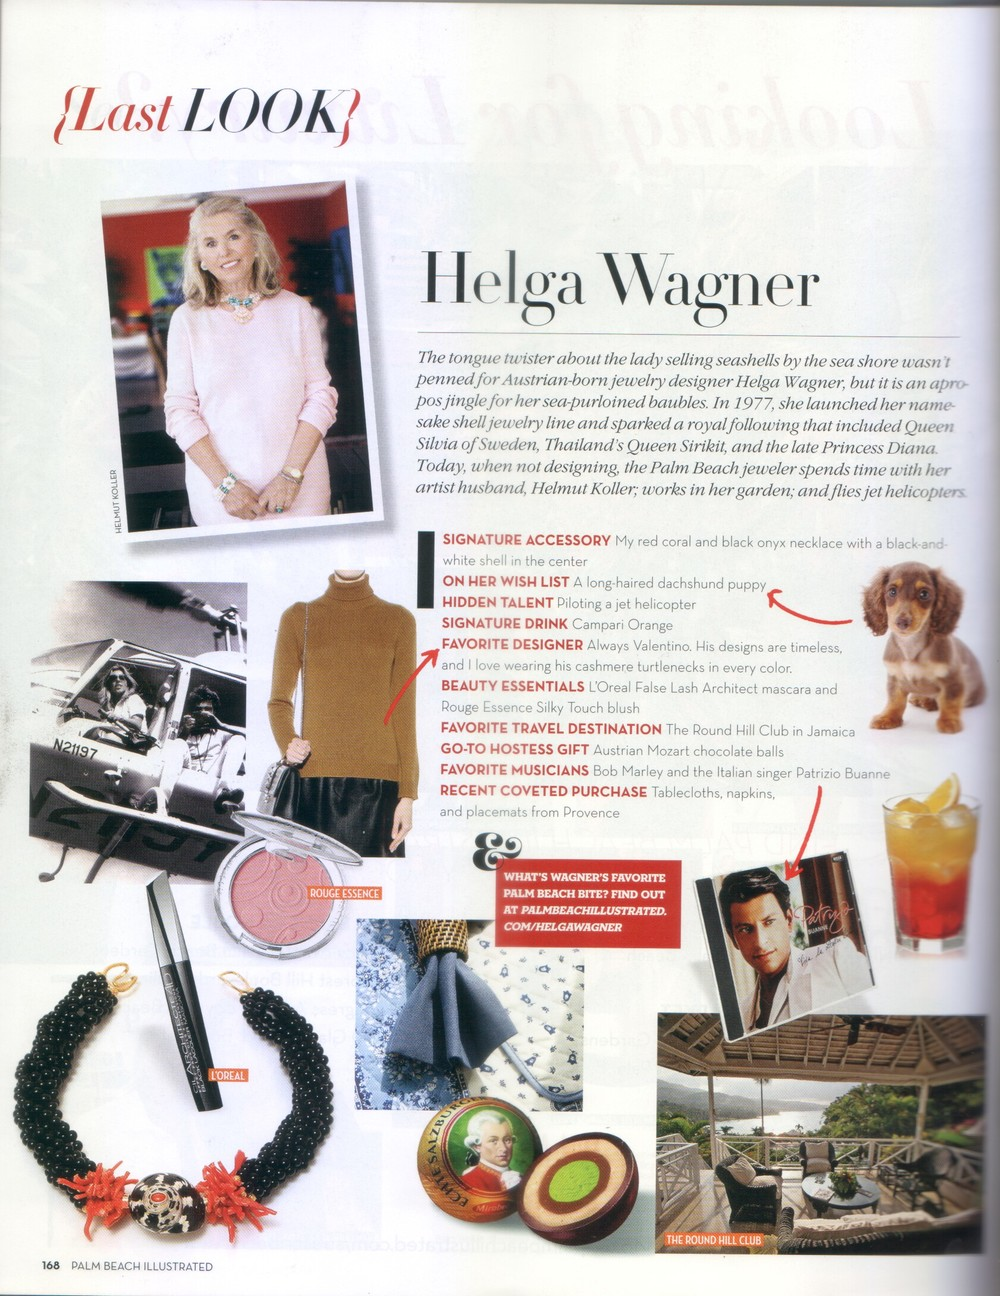 Helga Wagoner feature in Palm Beach Illustrated